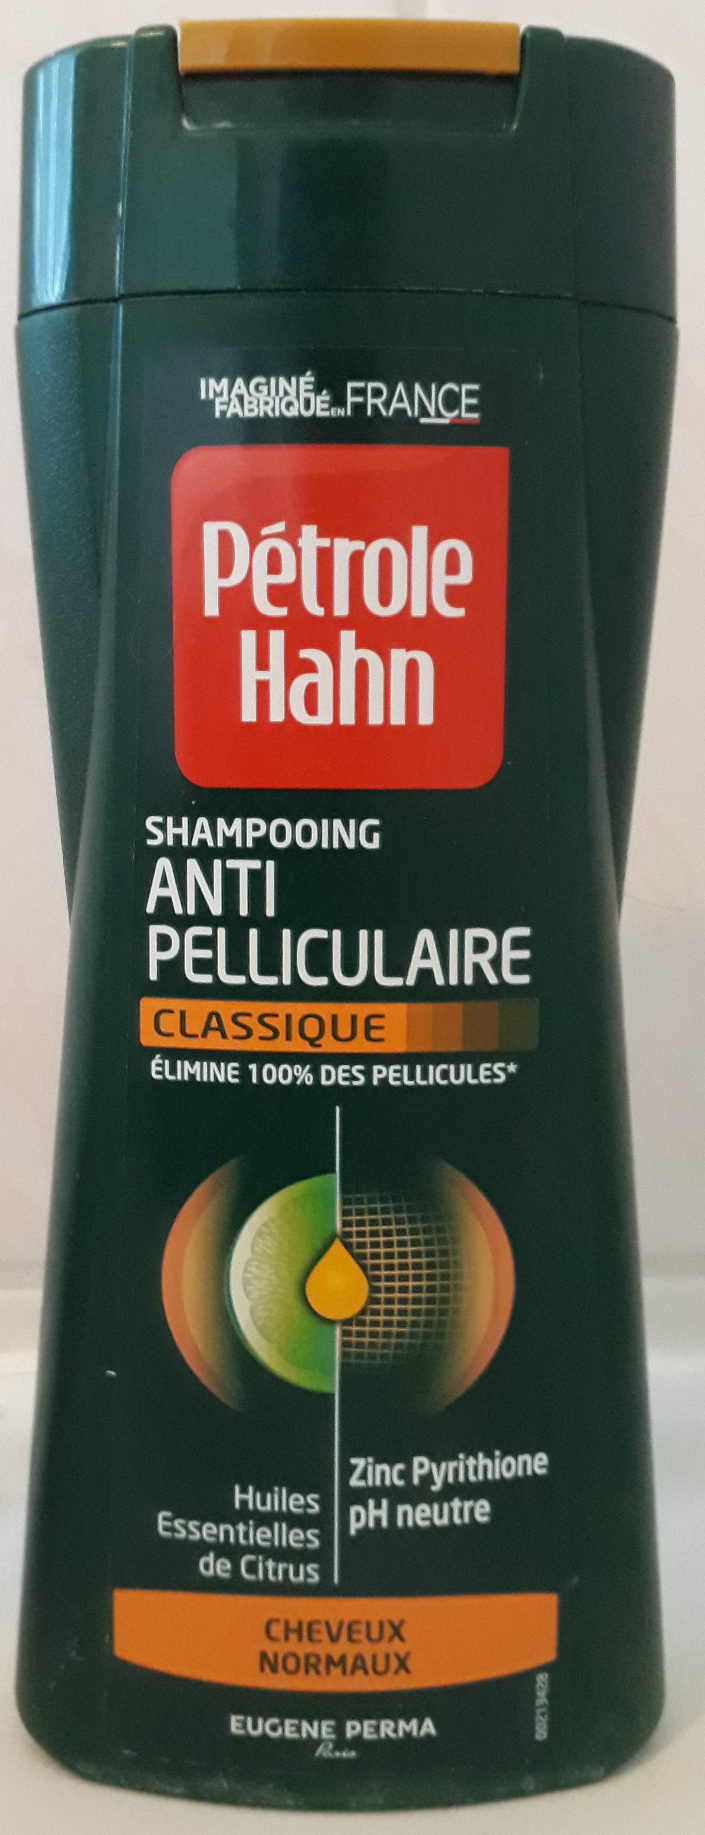 Shampooing anti pelliculaire classique, cheveux normaux - Product